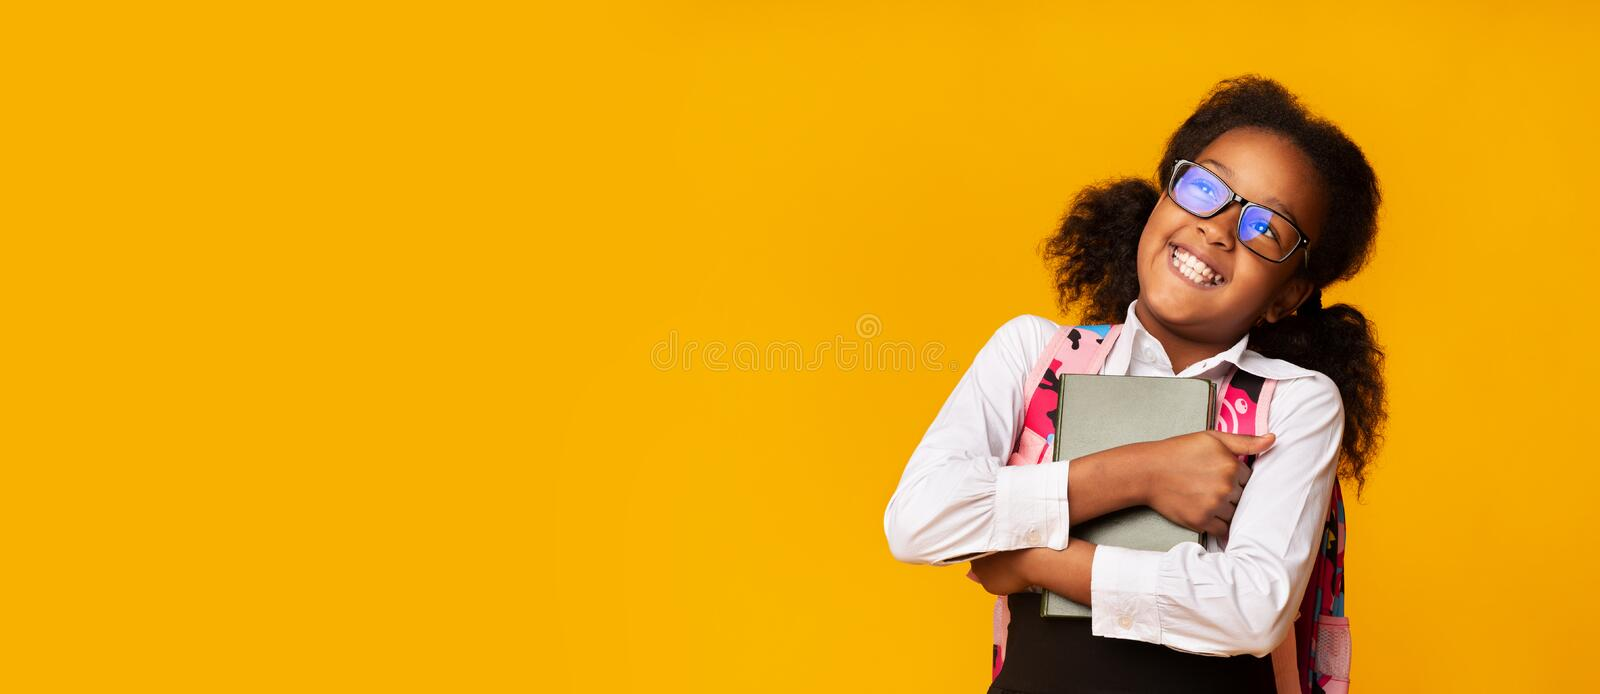 Positive Black Schoolgirl Embracing Book, Studio Shot, Panorama. Positive Black Schoolgirl Embracing Book On Yellow Background. Happy Back To School. Free Space stock images